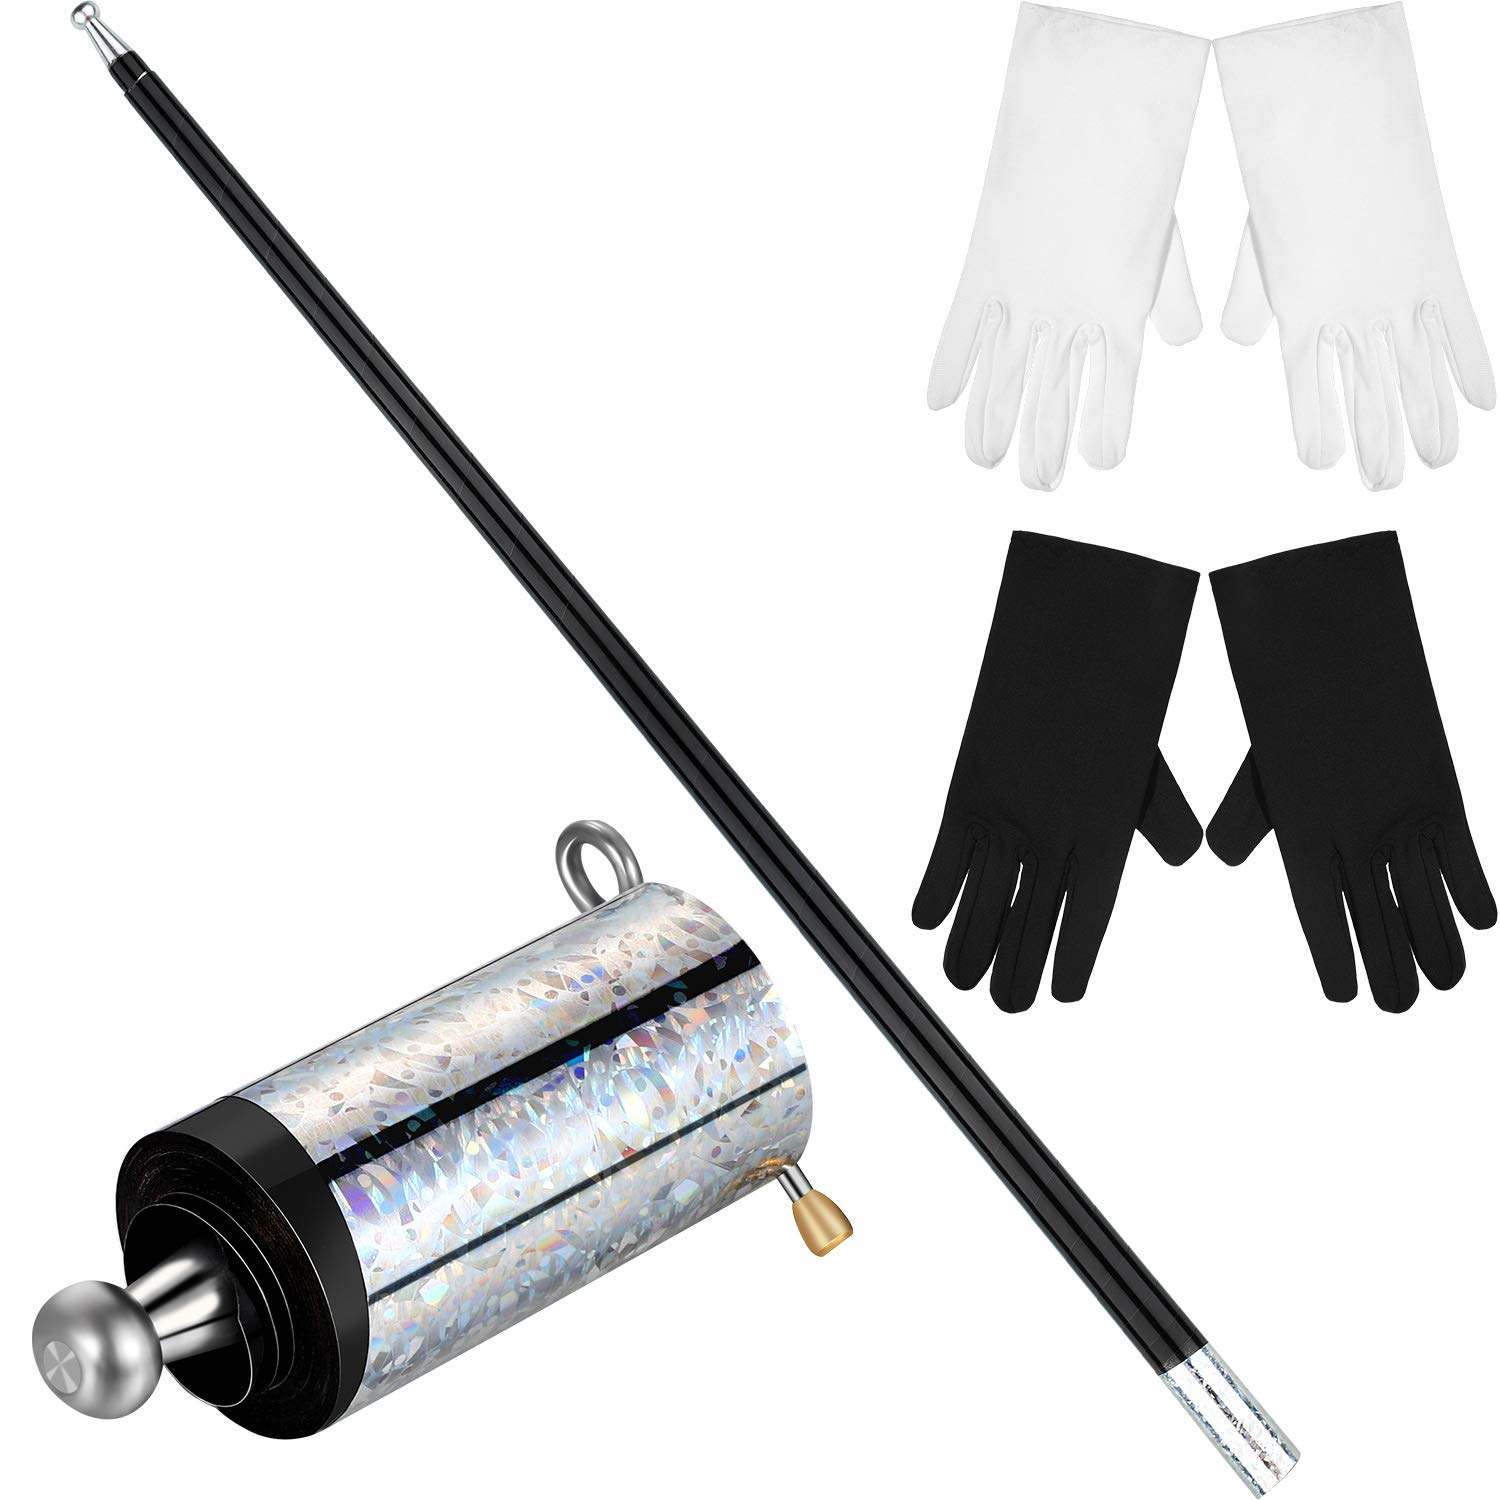 Magic Wand Magic Cane Black Metal Appearing Cane with 2 Pairs Gloves for Magician Costume Accessories by Gejoy